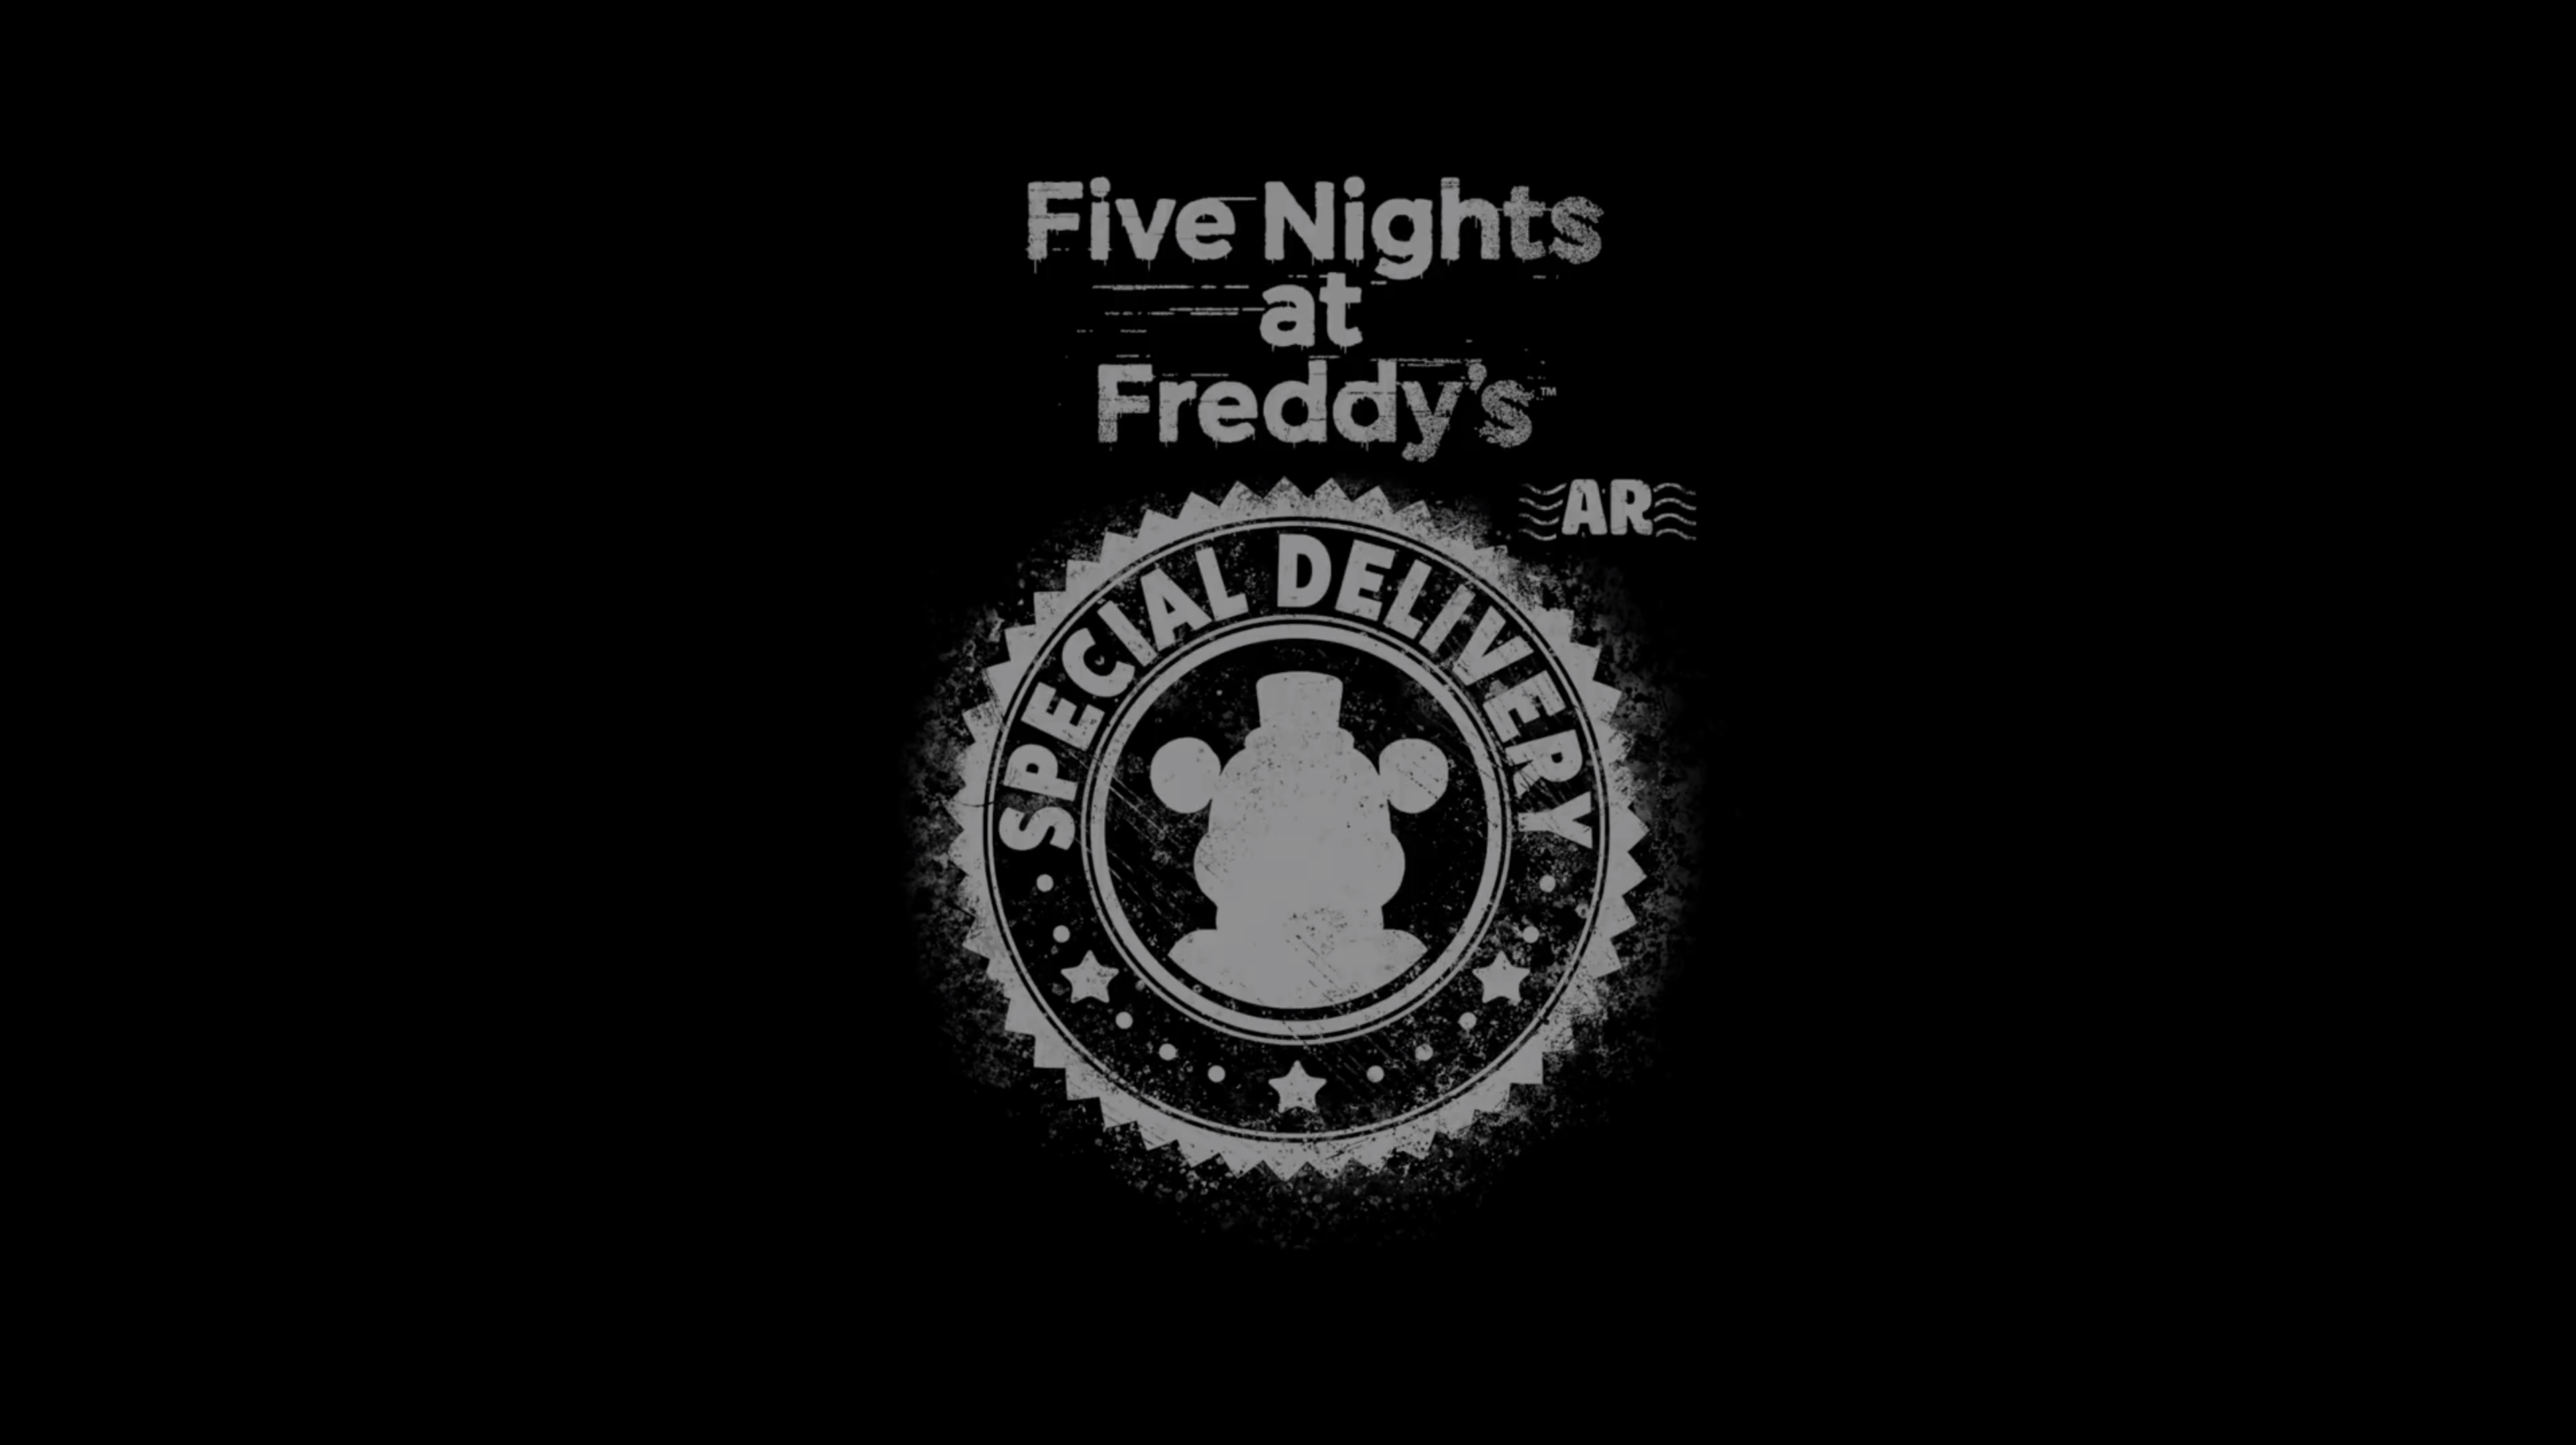 Five Nights At Freddy S Ar Special Delivery Will Arrive This Fall Five Nights At Freddy S Five Night Night